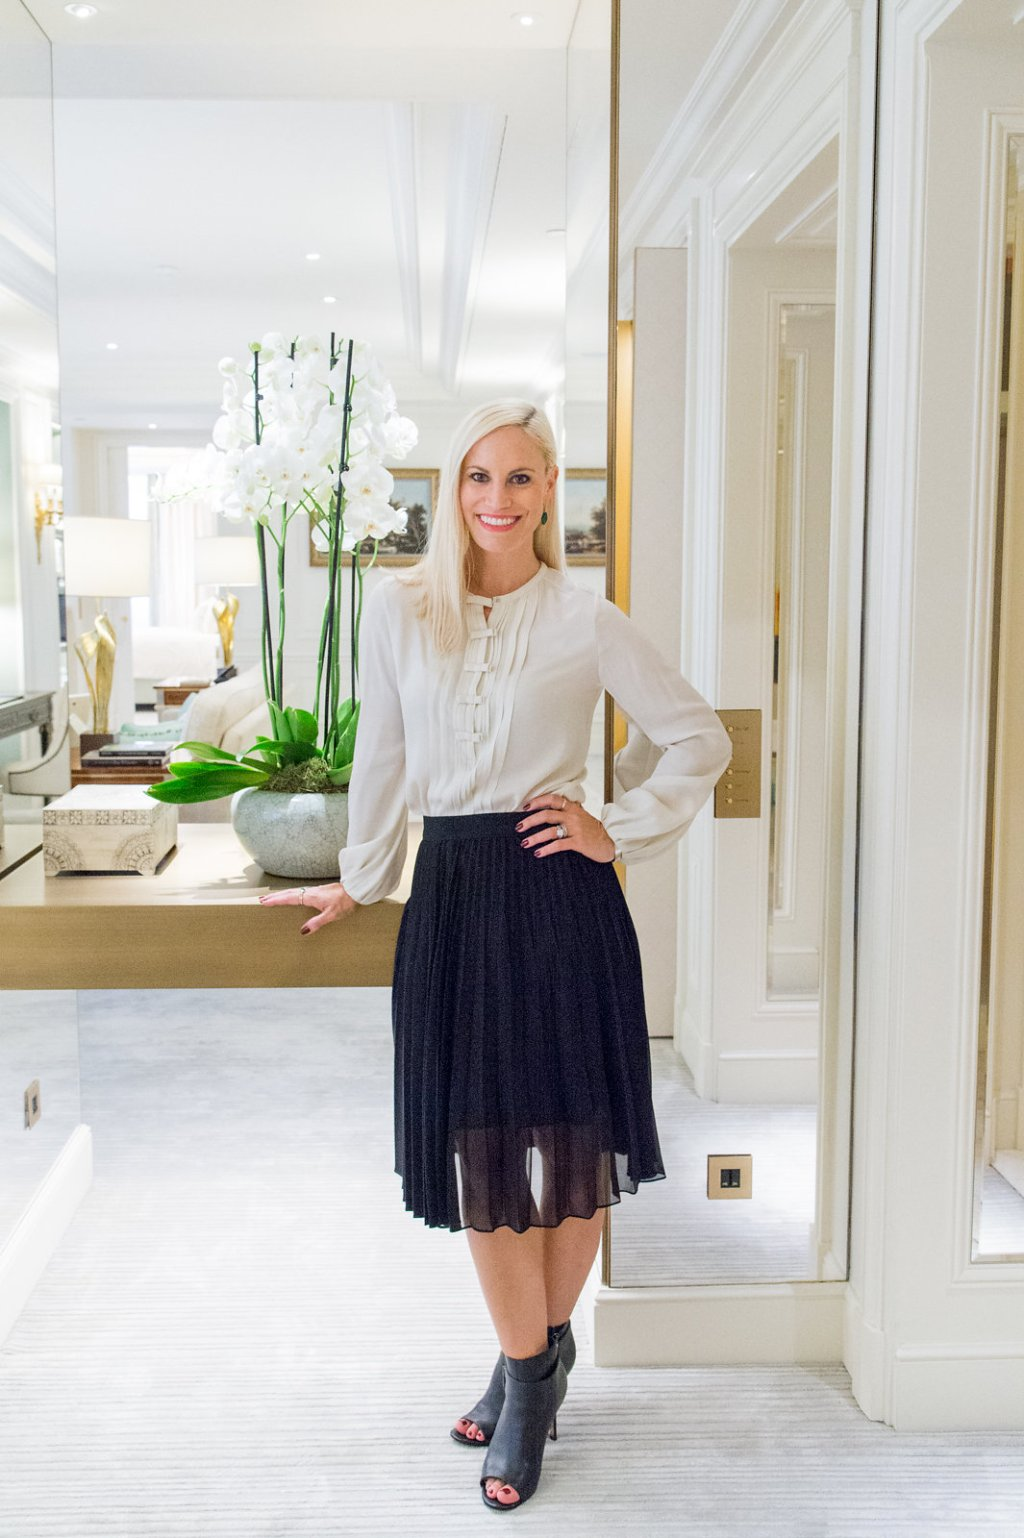 Ceci Johnson: Designing Stationery, Lifestyle and Business